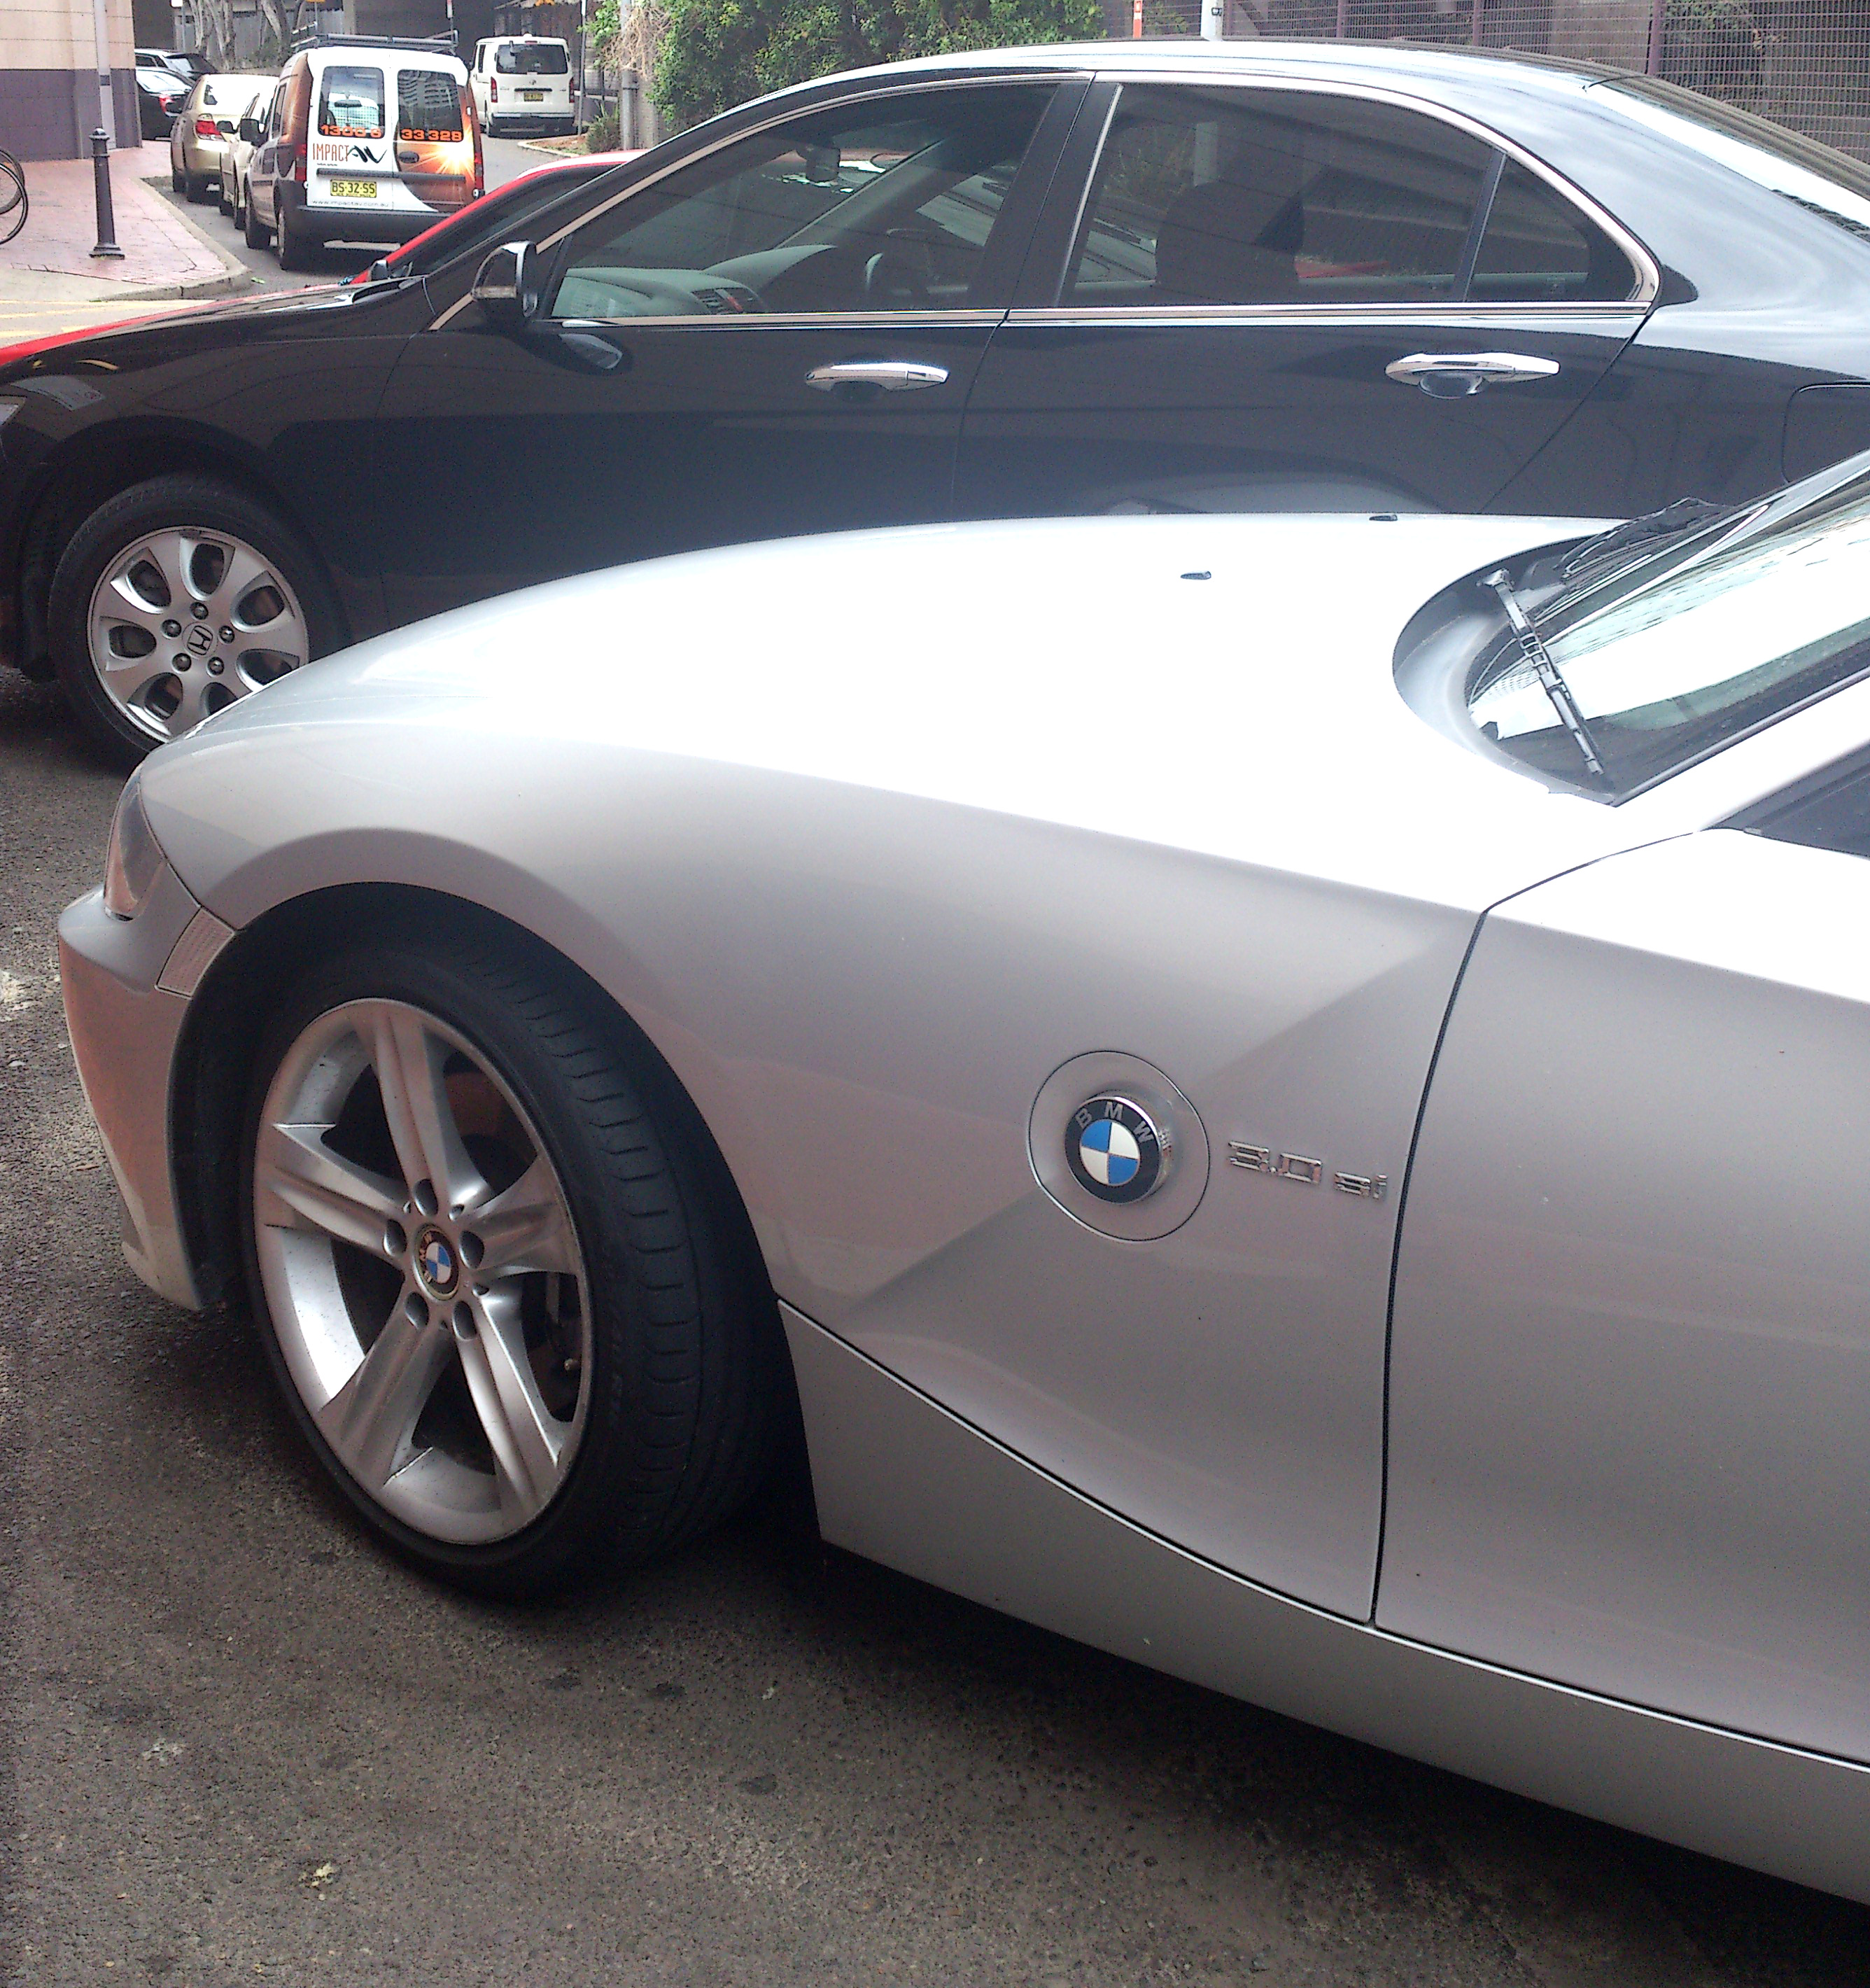 Bmw Z4 Coupe: File:BMW Z4 Coupe 3.0Si (2).jpg